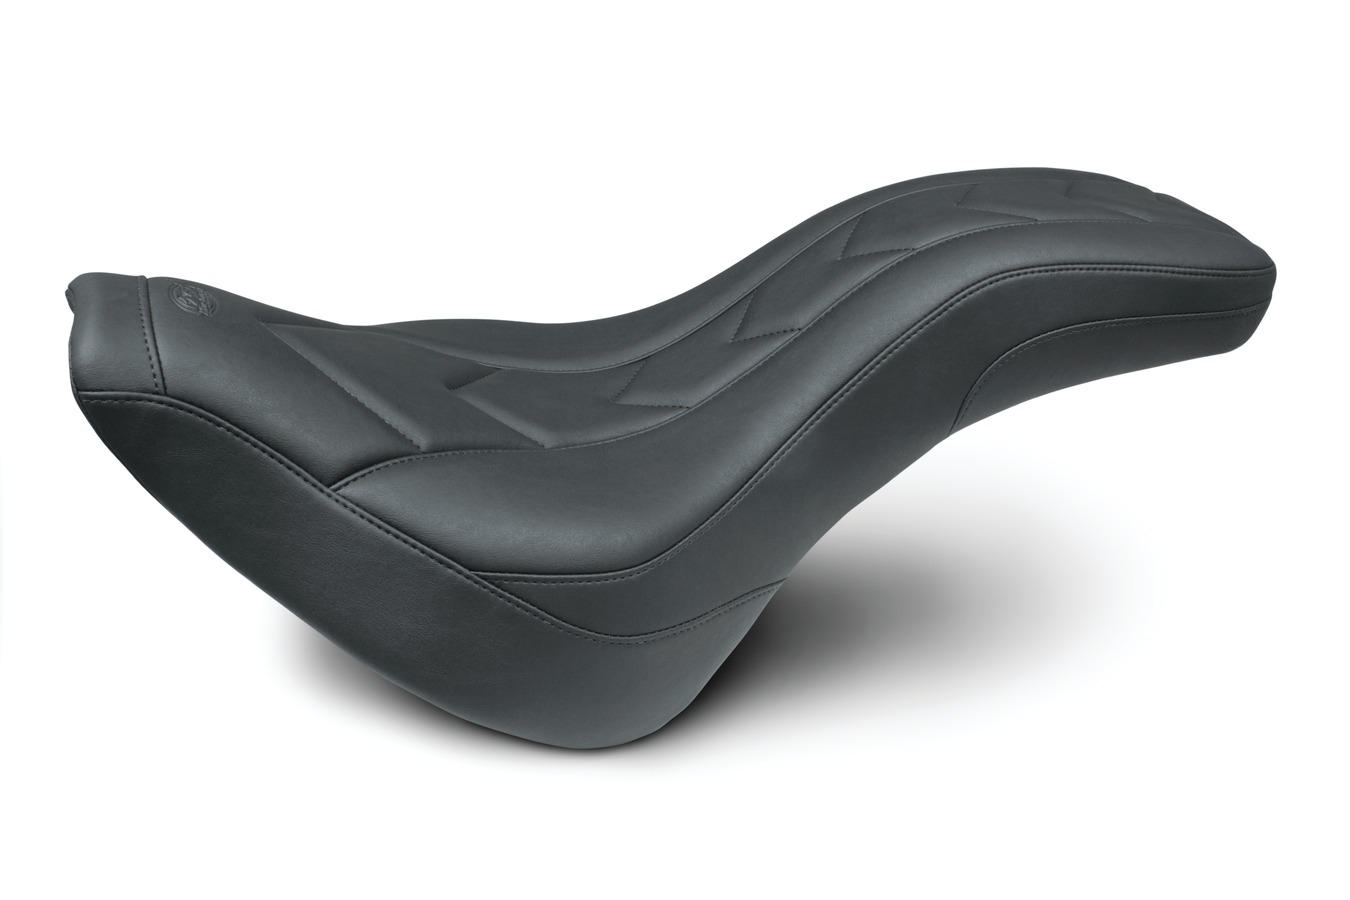 Tripper Fastback™ One-Piece Seat for Harley-Davidson Street Bob 2018-